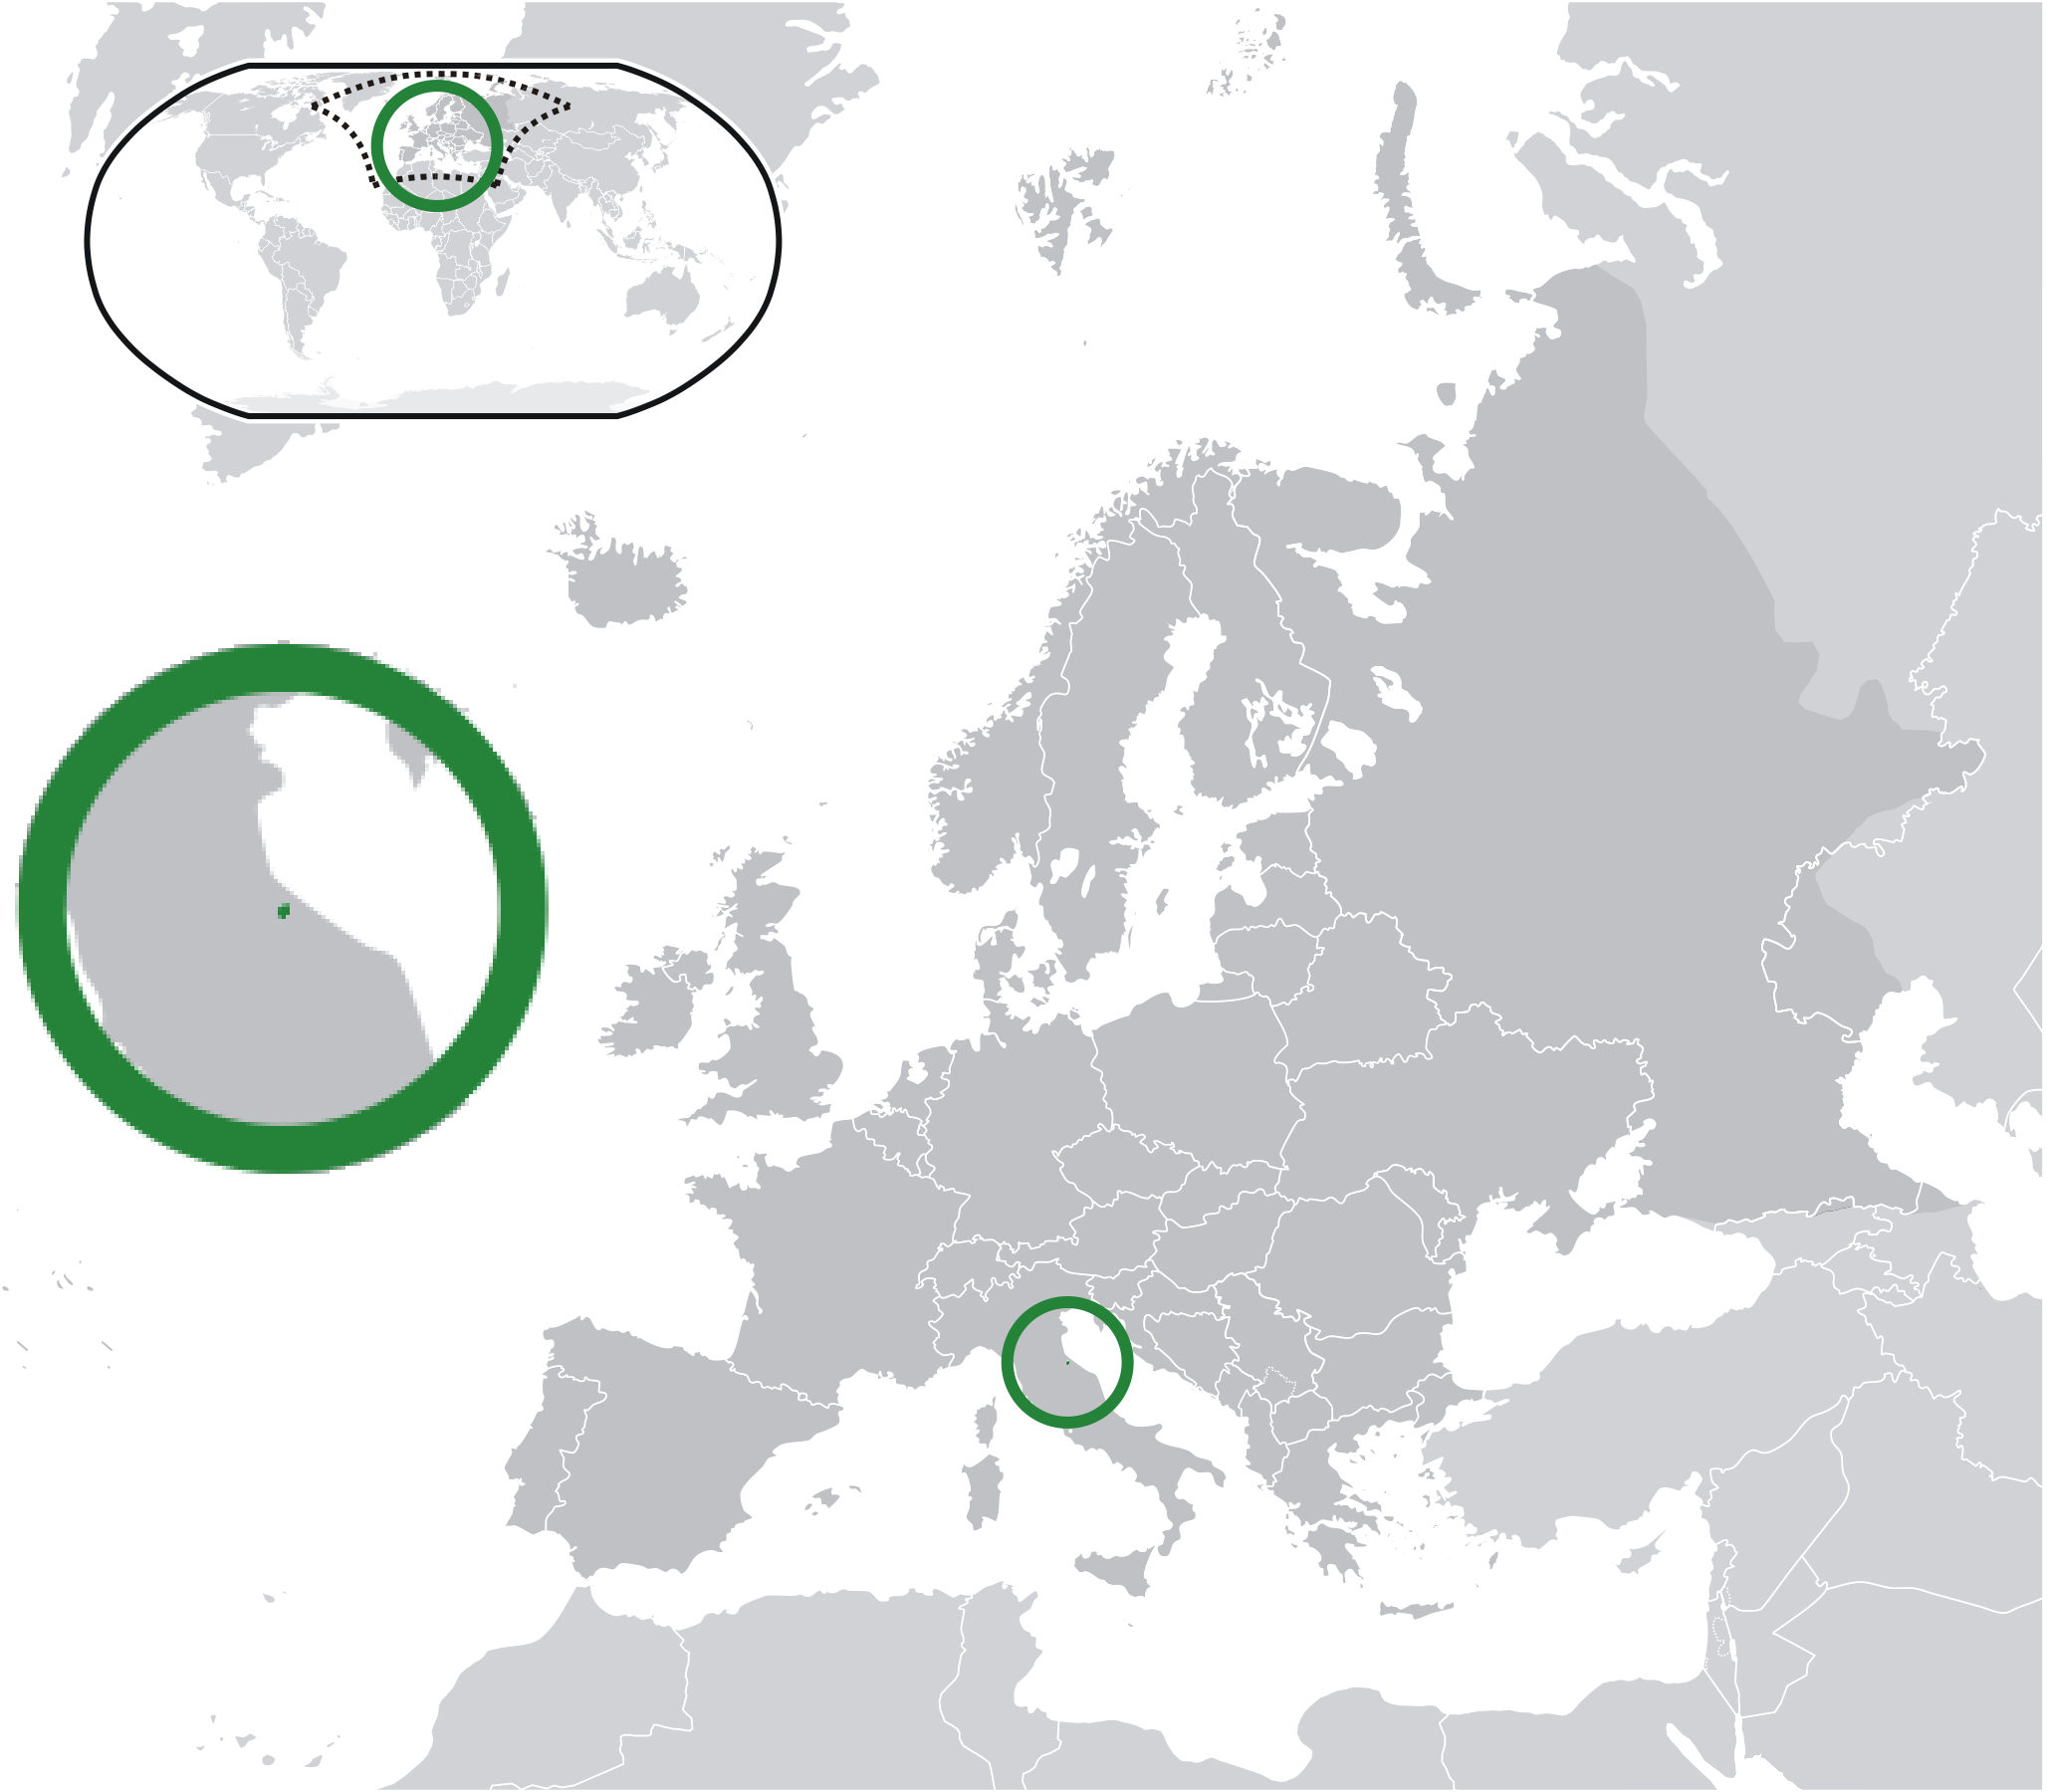 Dosya:location San Marino Europe - Vikipedi à Carte Des Pays D Europe